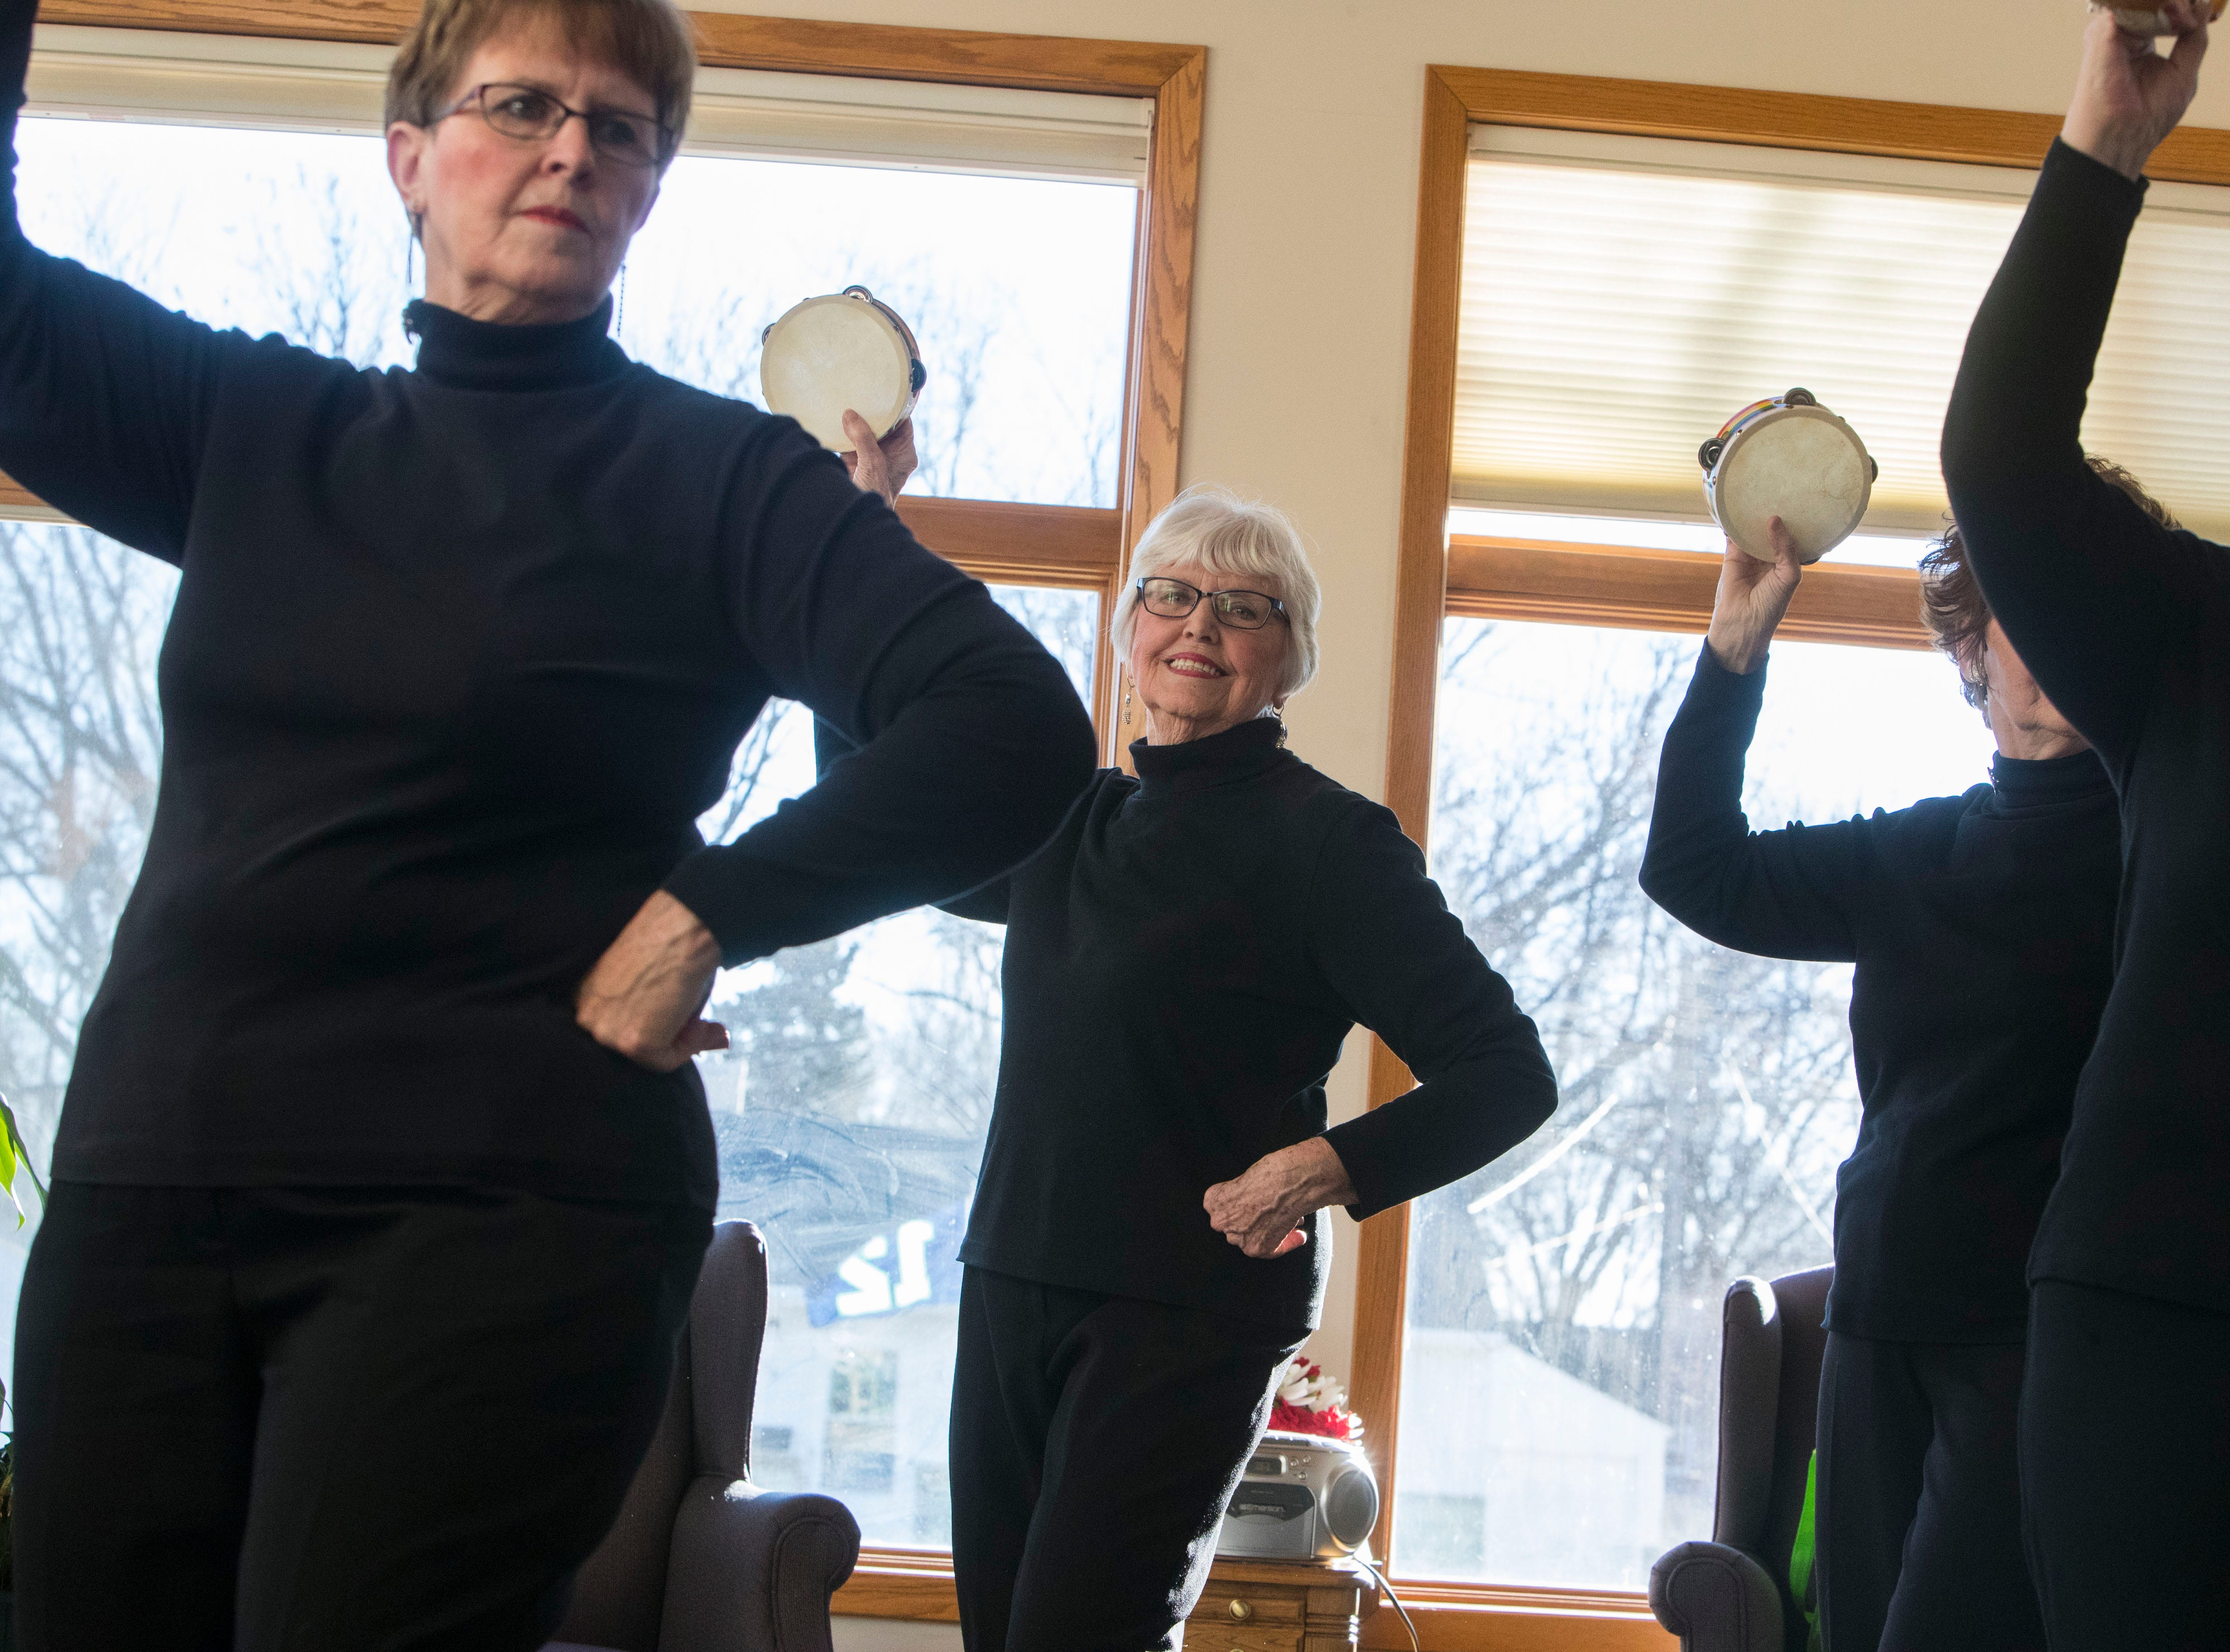 The Dancing Divas practice before the show at Good Samaritan Society-Luther Manor in Sioux Falls, S.D., Friday, Dec. 14, 2018.